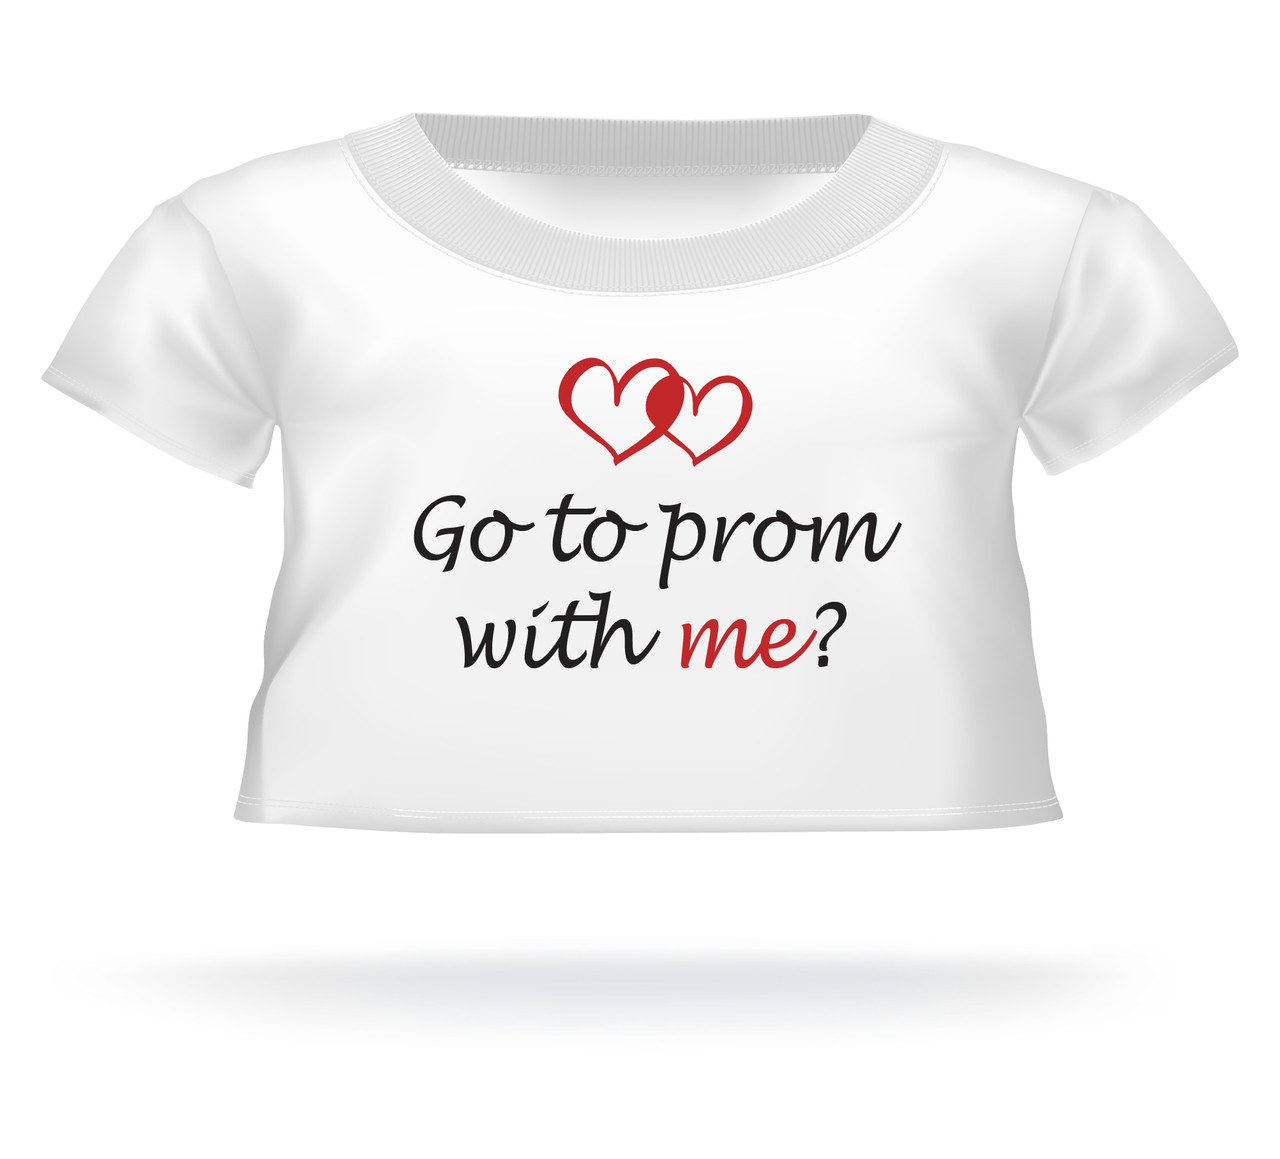 Giant Teddy Bear Go to Prom With Me? T-Shirt